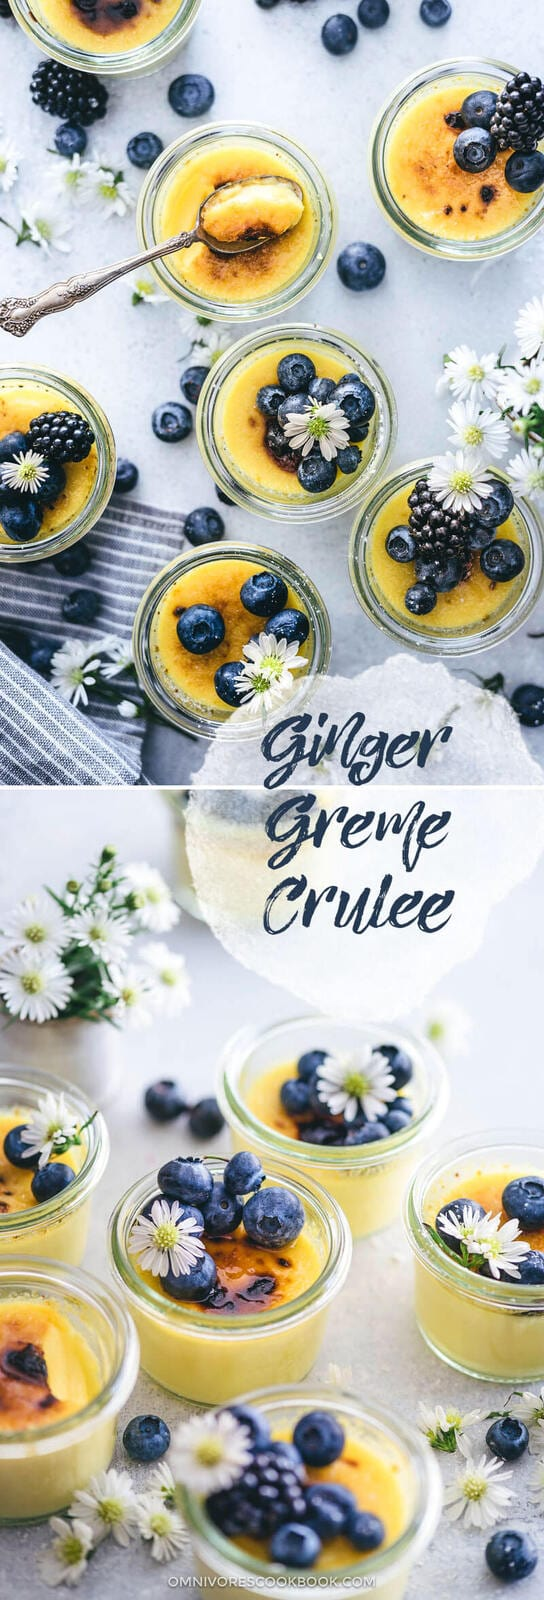 Ginger Creme Brulee | Asian | Dessert | Sweets | Easy | Recipe | Healthy | Low Sugar